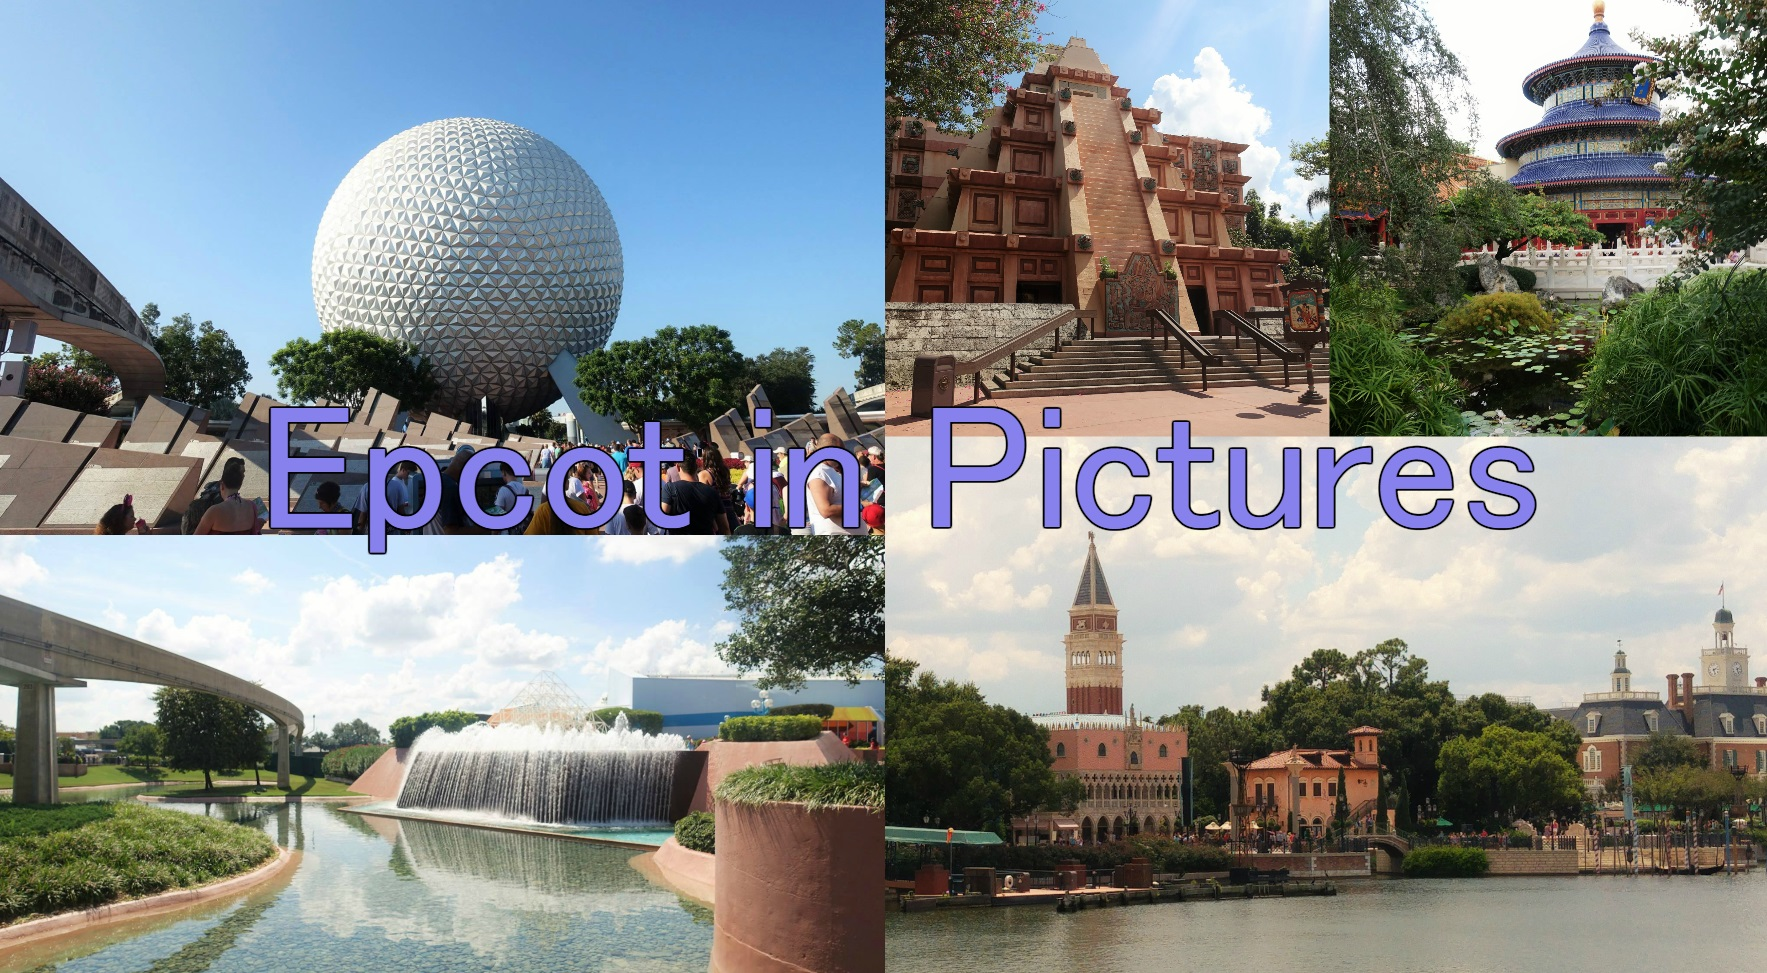 Epcot in Pictures